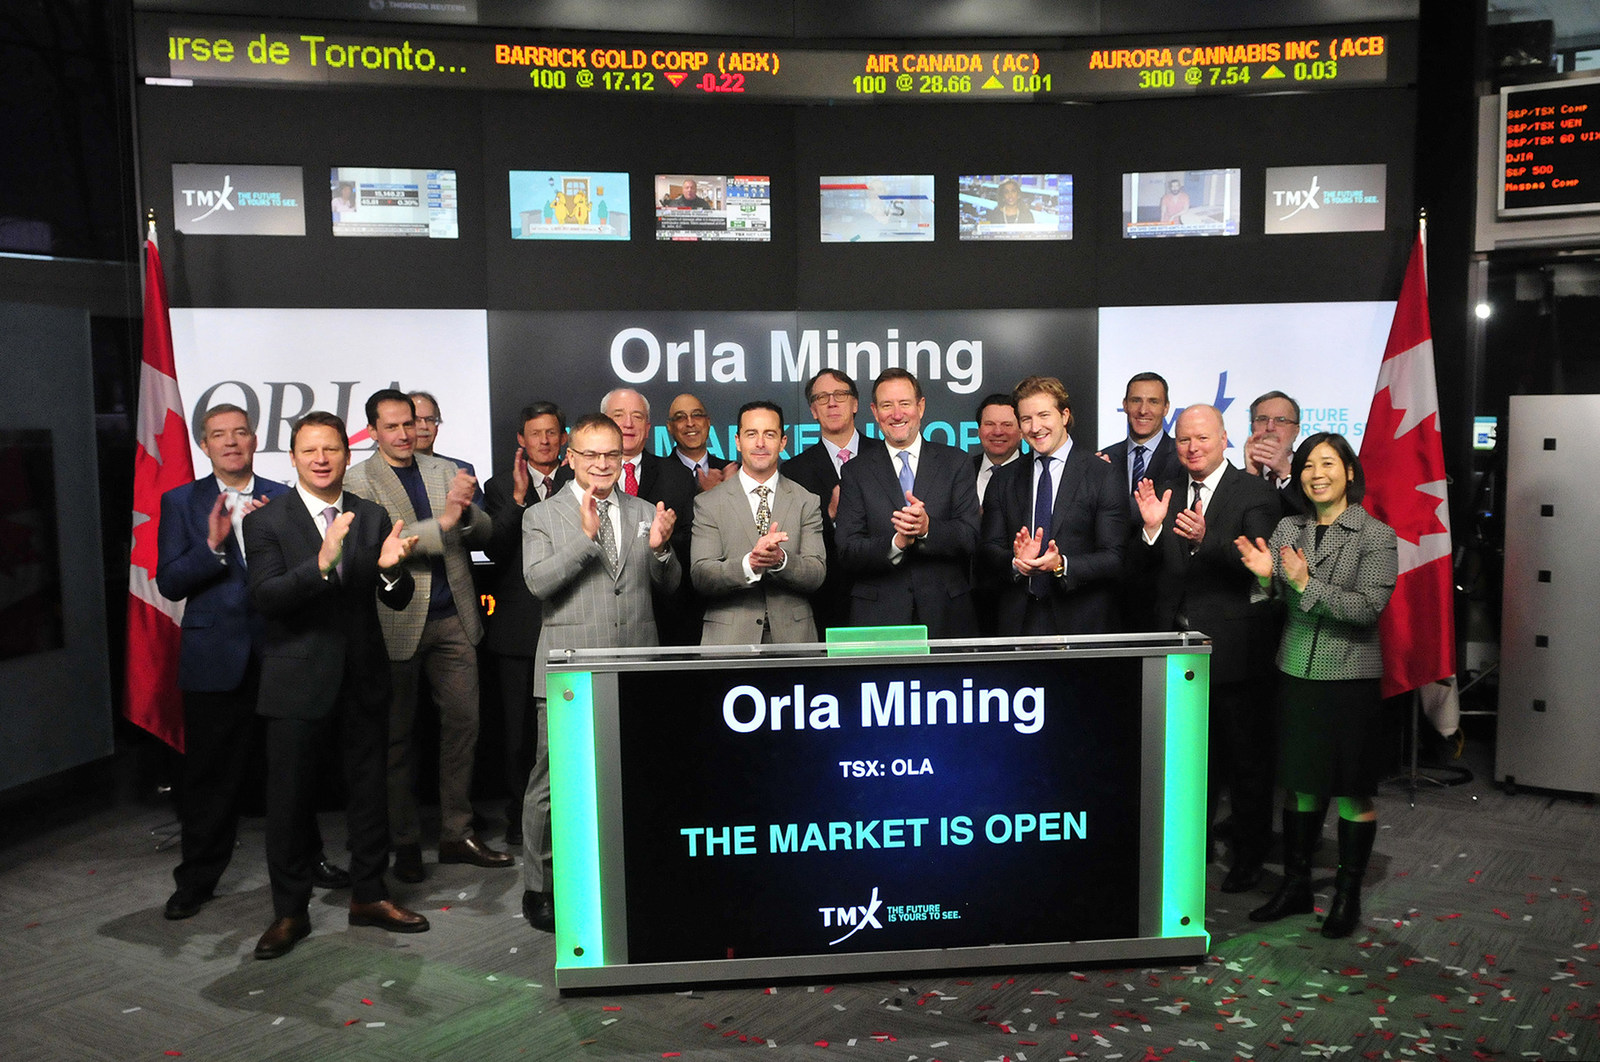 Orla Mining Ltd. Opens the Market